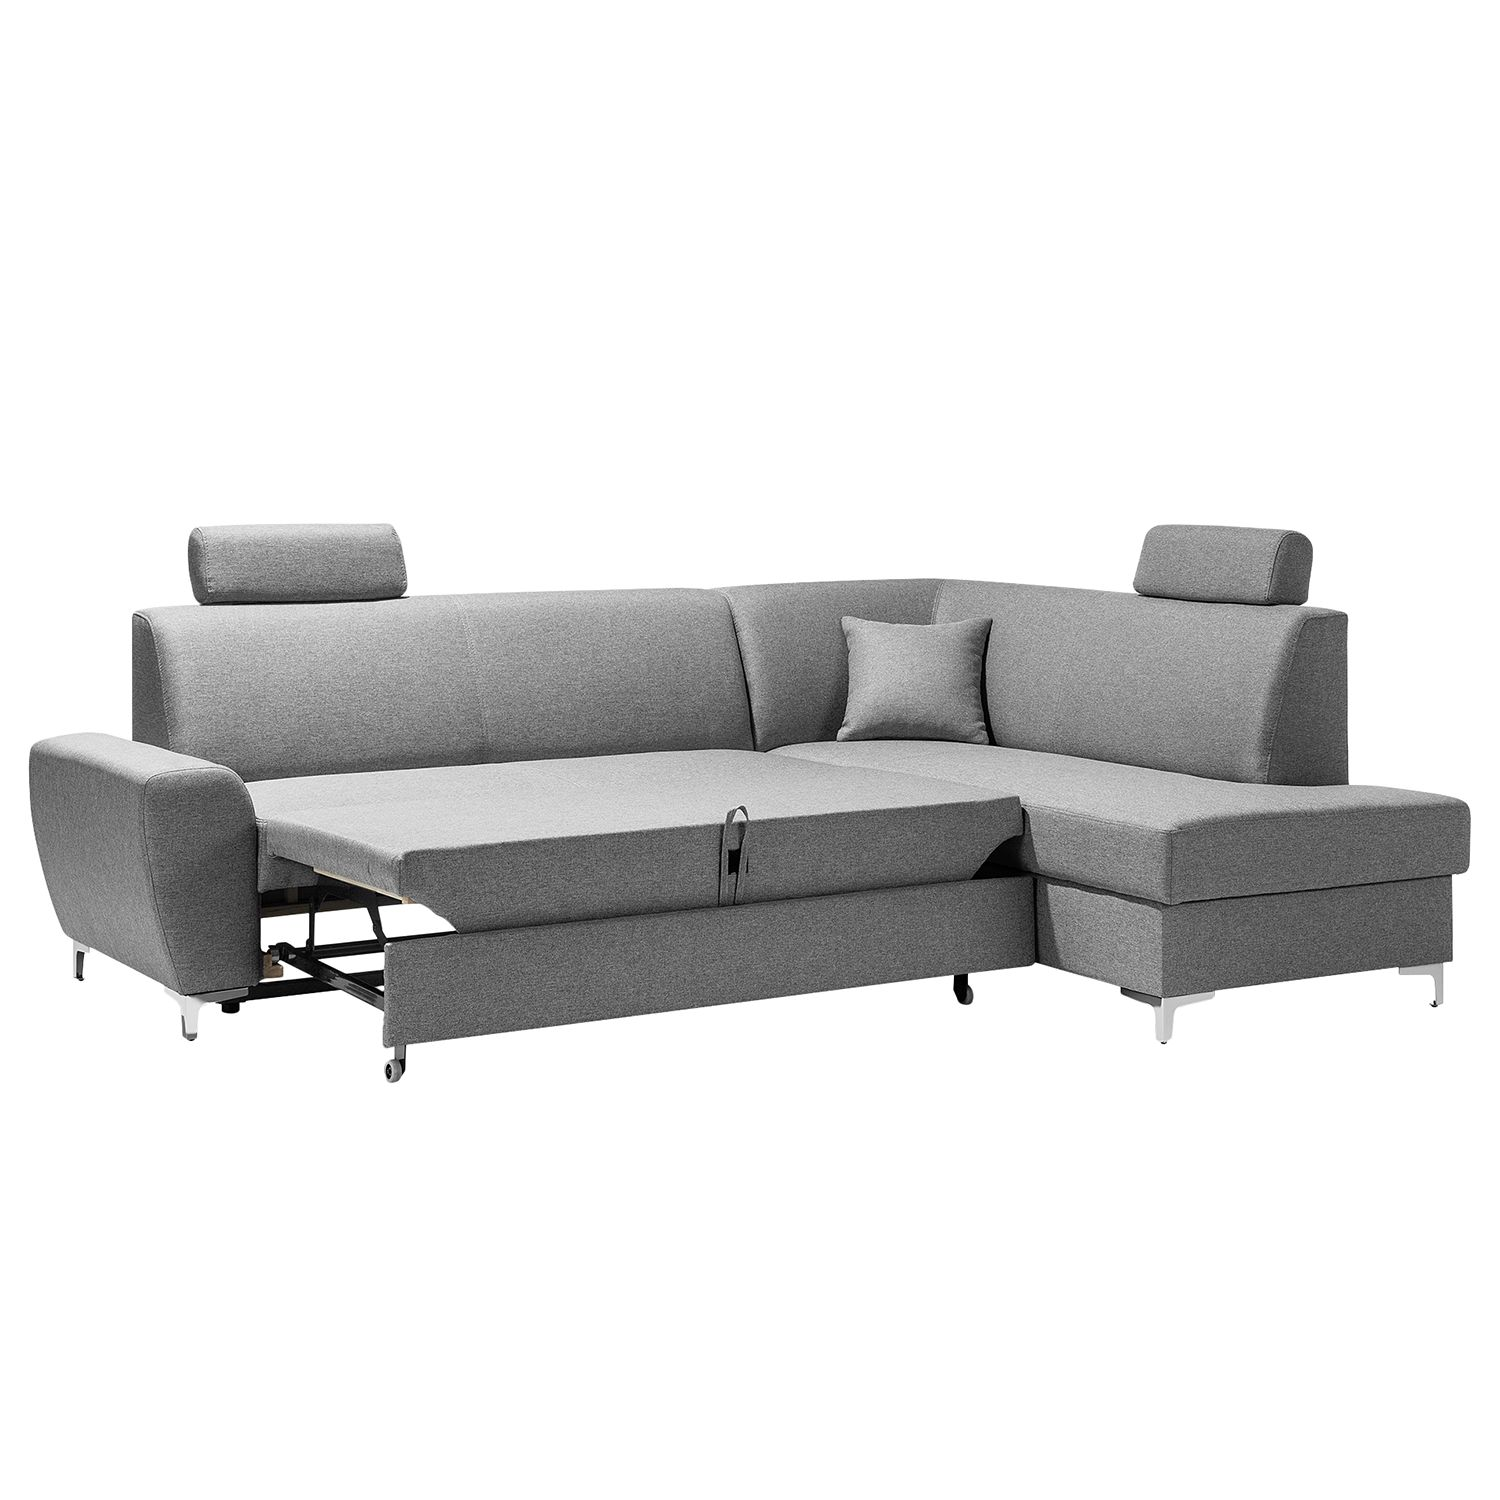 11 sparen ecksofa chase von fredriks nur 799 99 cherry m bel home24. Black Bedroom Furniture Sets. Home Design Ideas